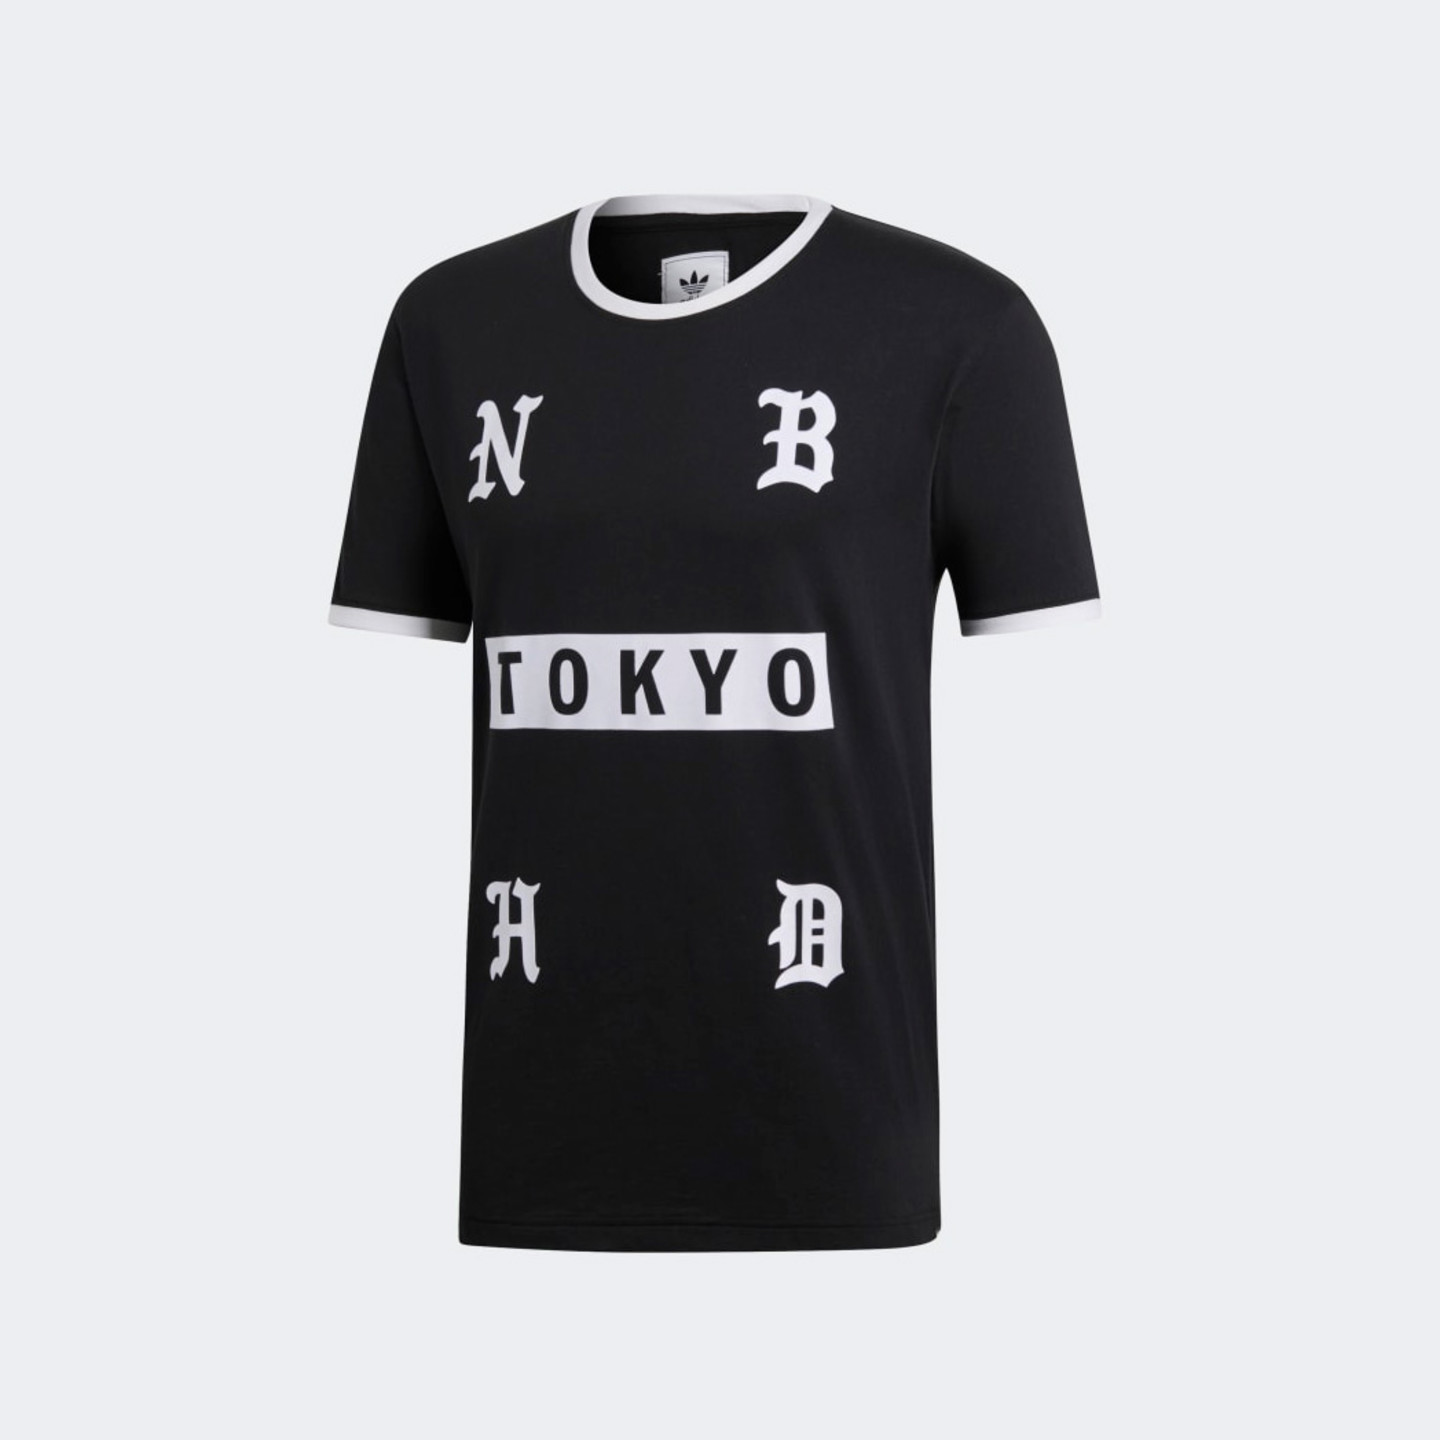 Adidas Neighborhood Tokyo Tee Black / White / Red DH2041